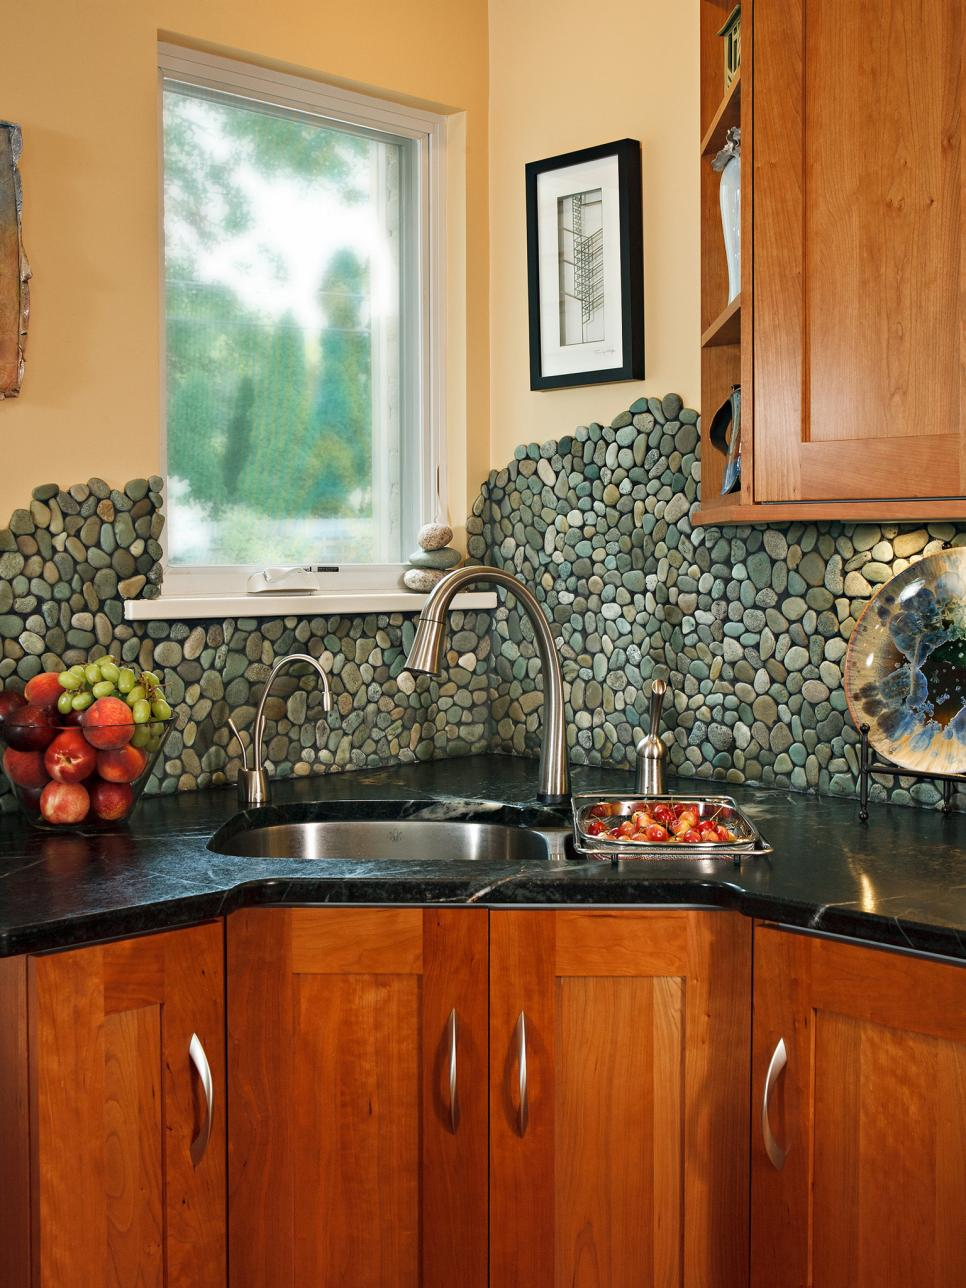 30 Trendiest Kitchen Backsplash Materials